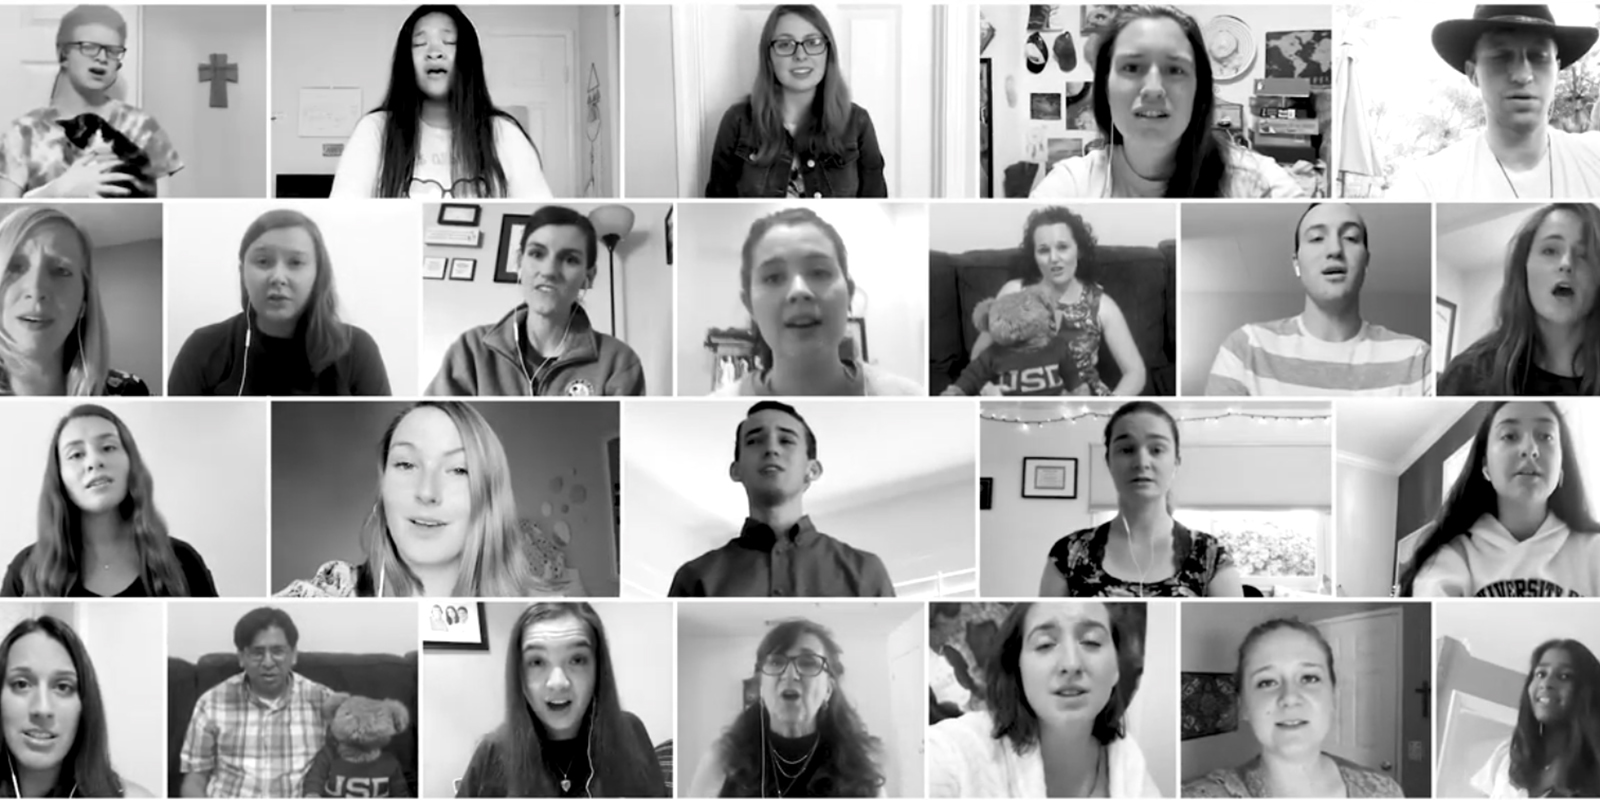 Dozens of members of USD's choir sing together via Zoom